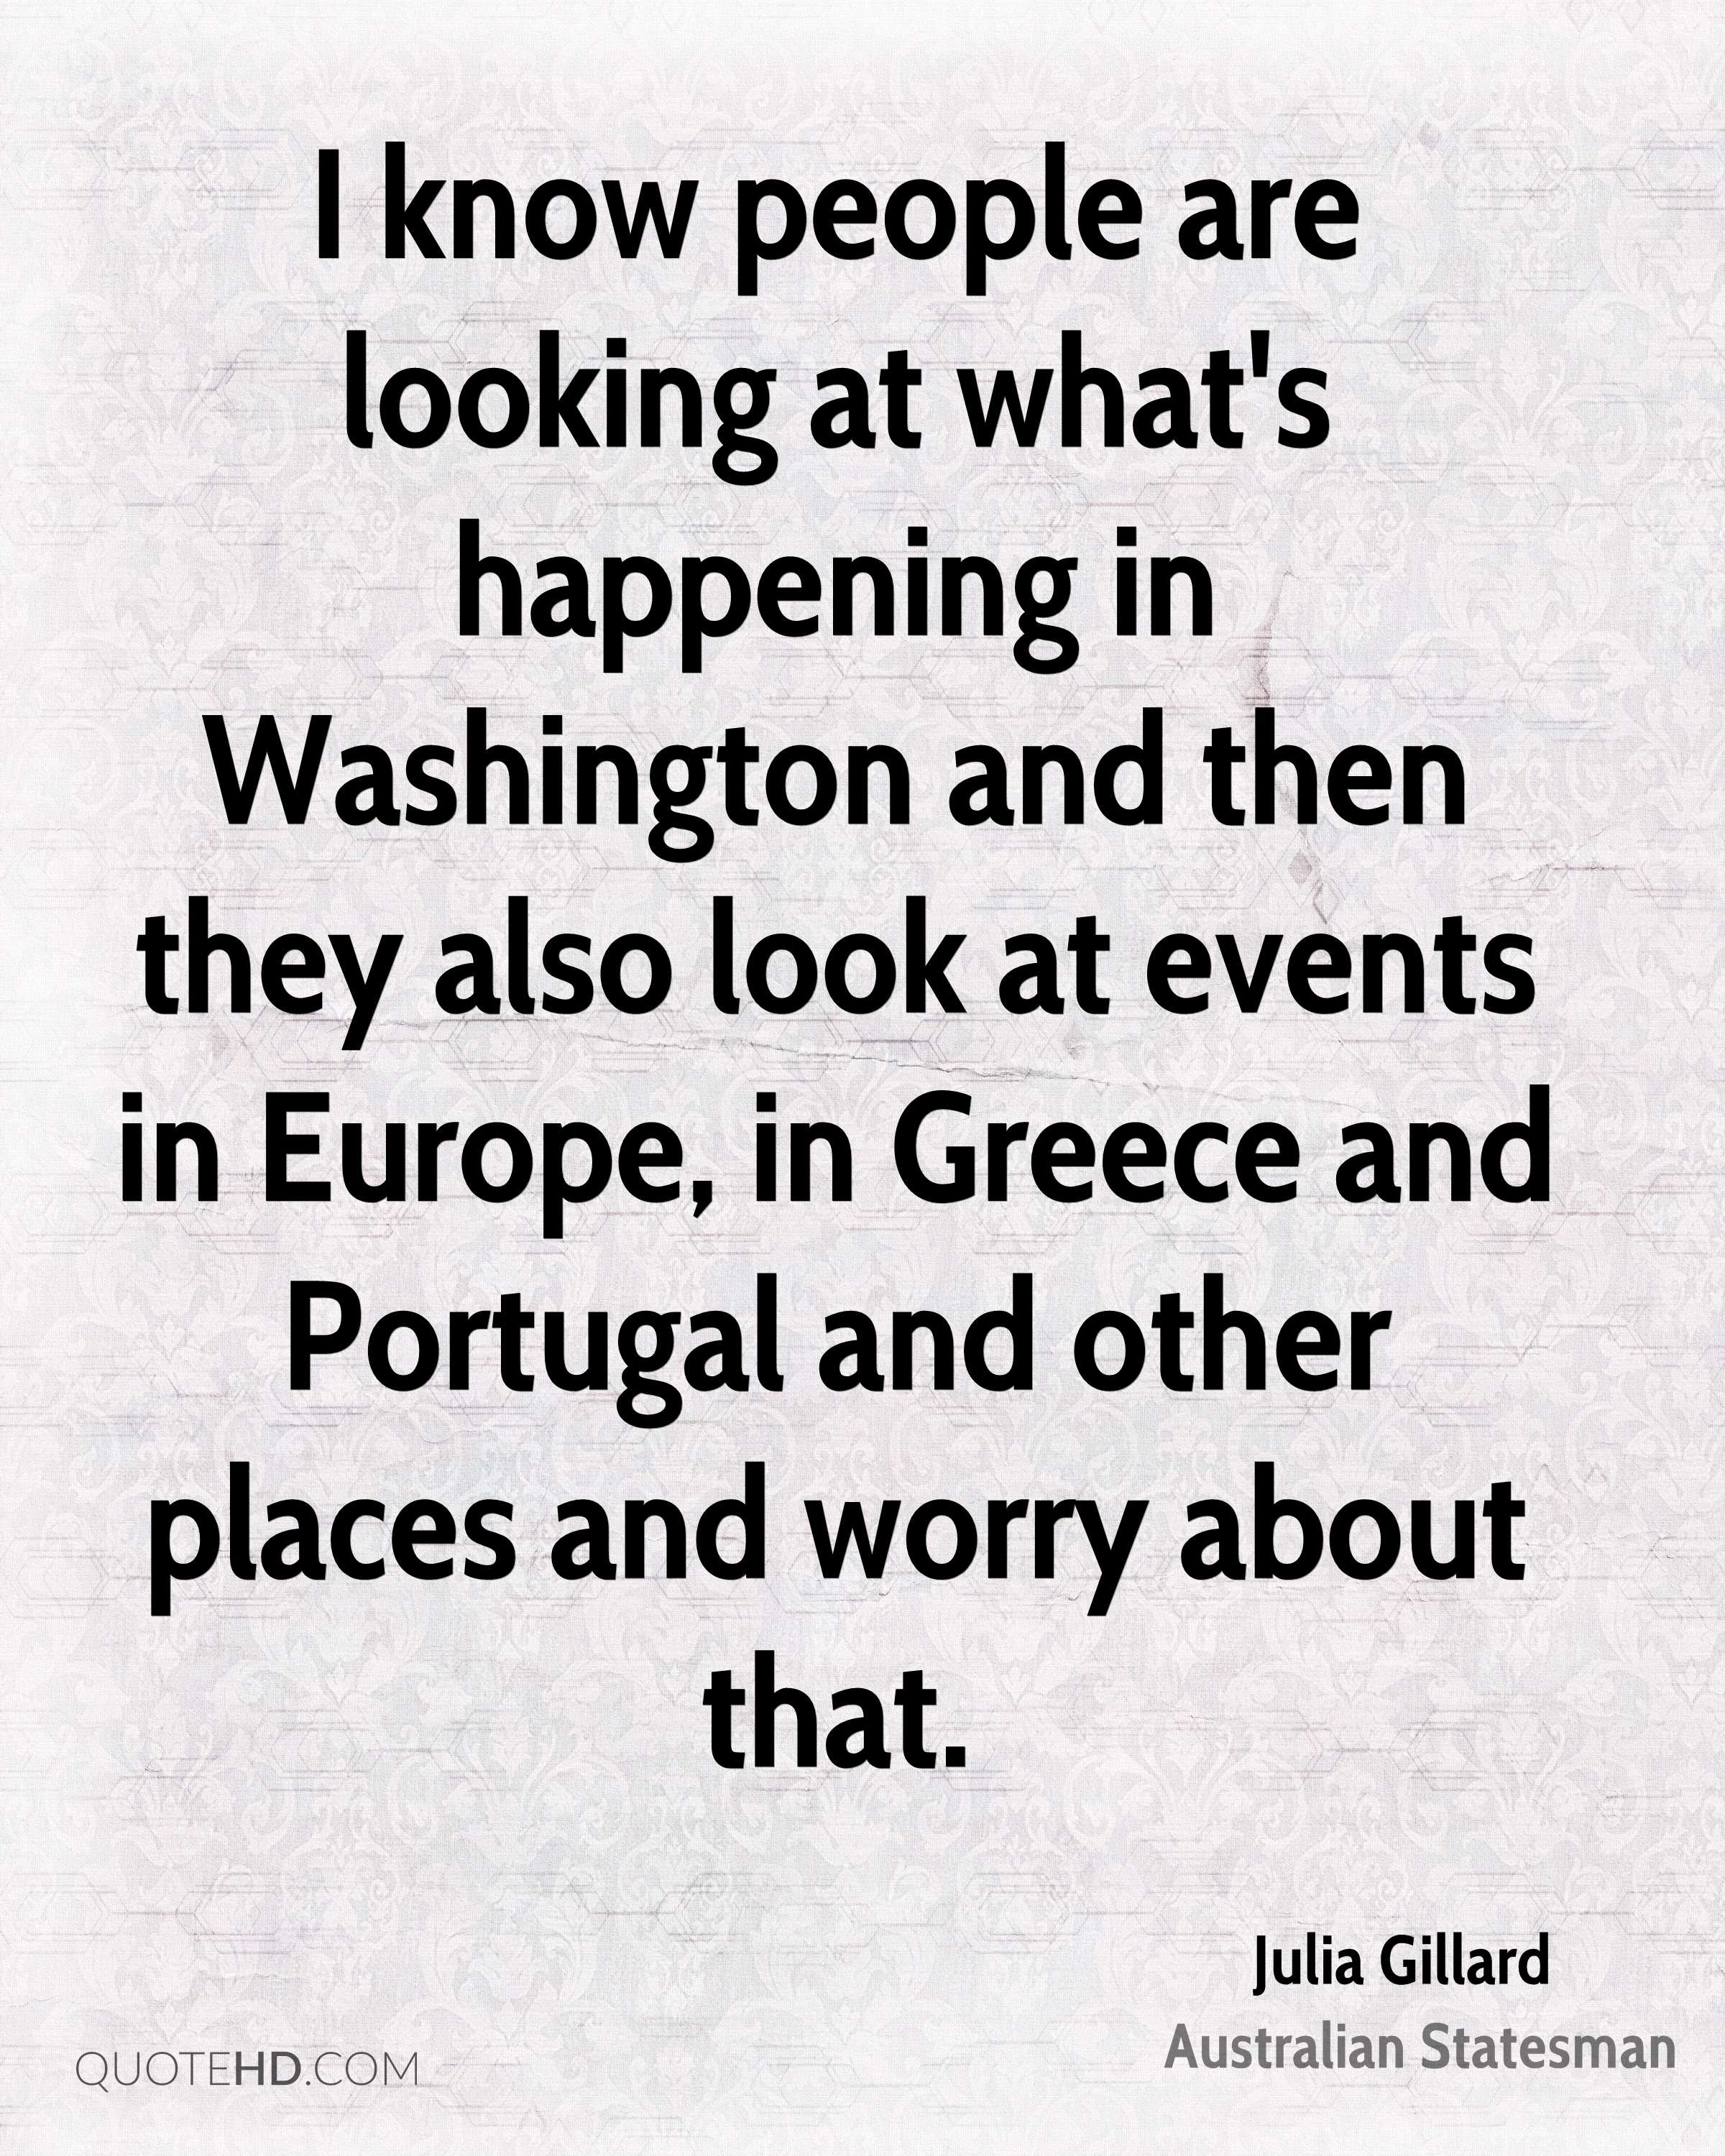 I know people are looking at what's happening in Washington and then they also look at events in Europe, in Greece and Portugal and other places and worry about that.